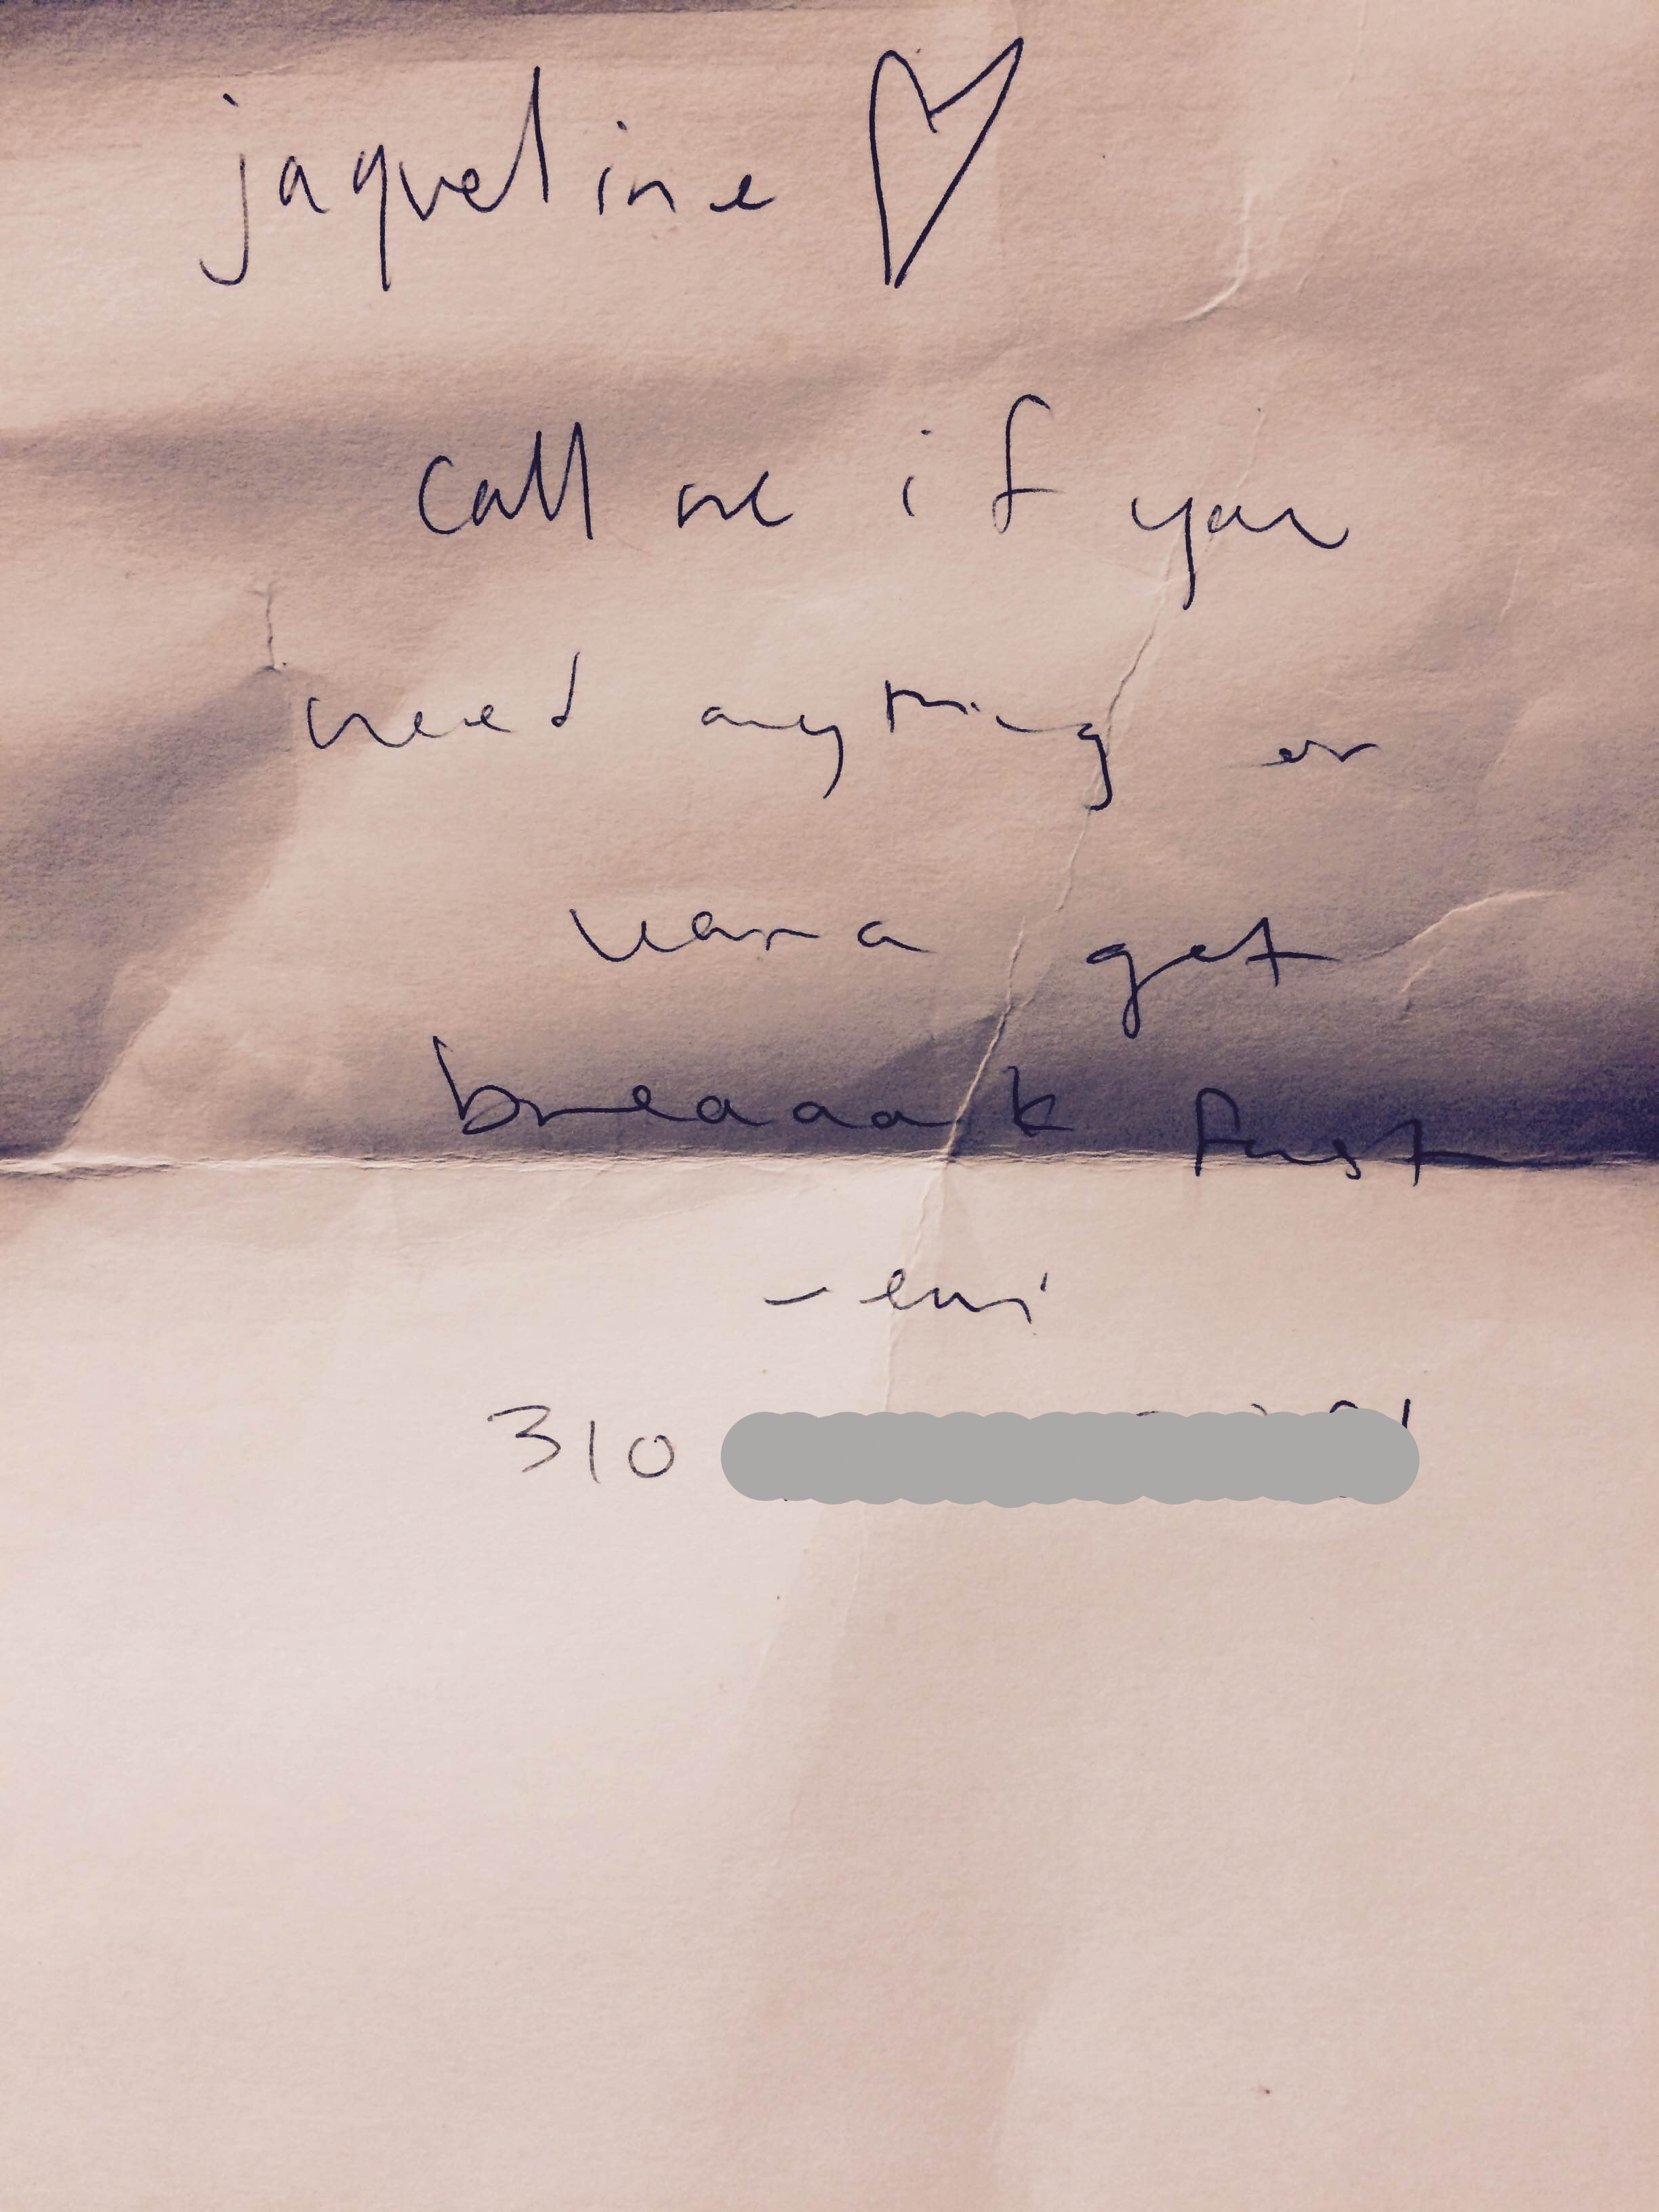 A note from emi left for Jacqueline Young